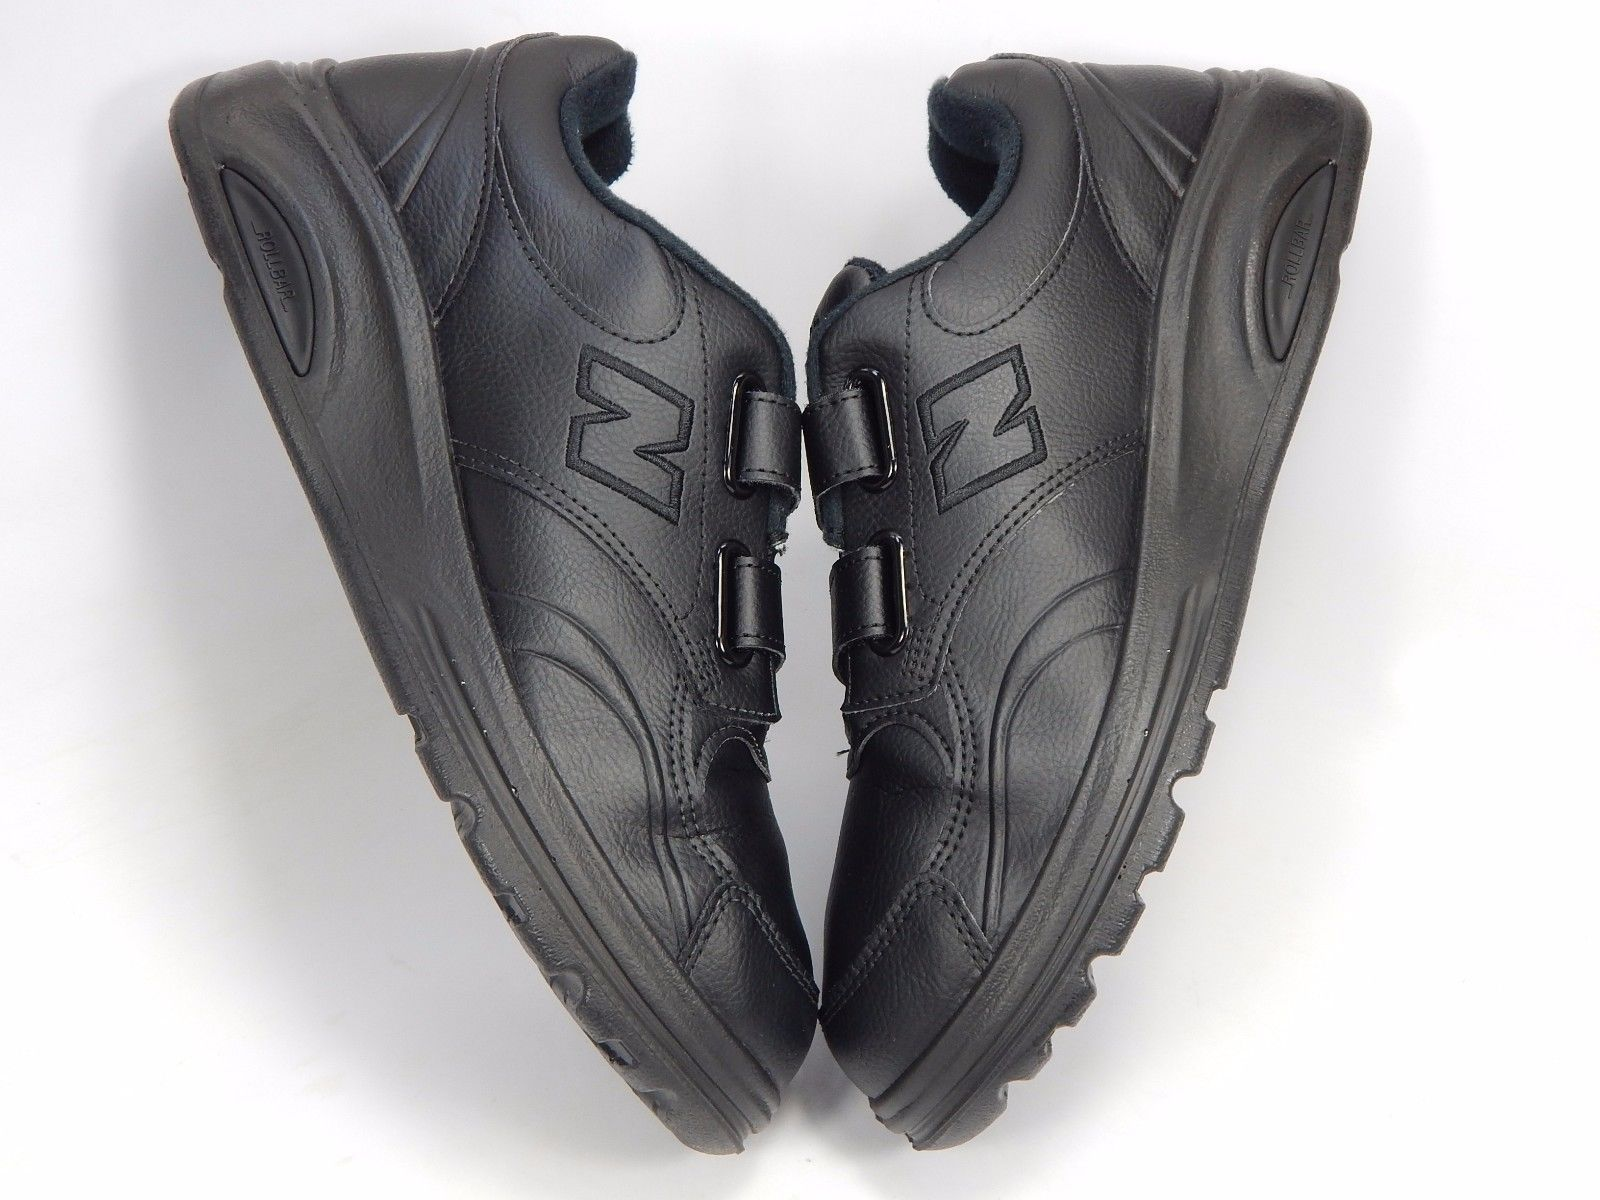 New Balance 812 Men's Walking Shoes Size US 8 2E WIDE EU 41.5 Black MW813VK